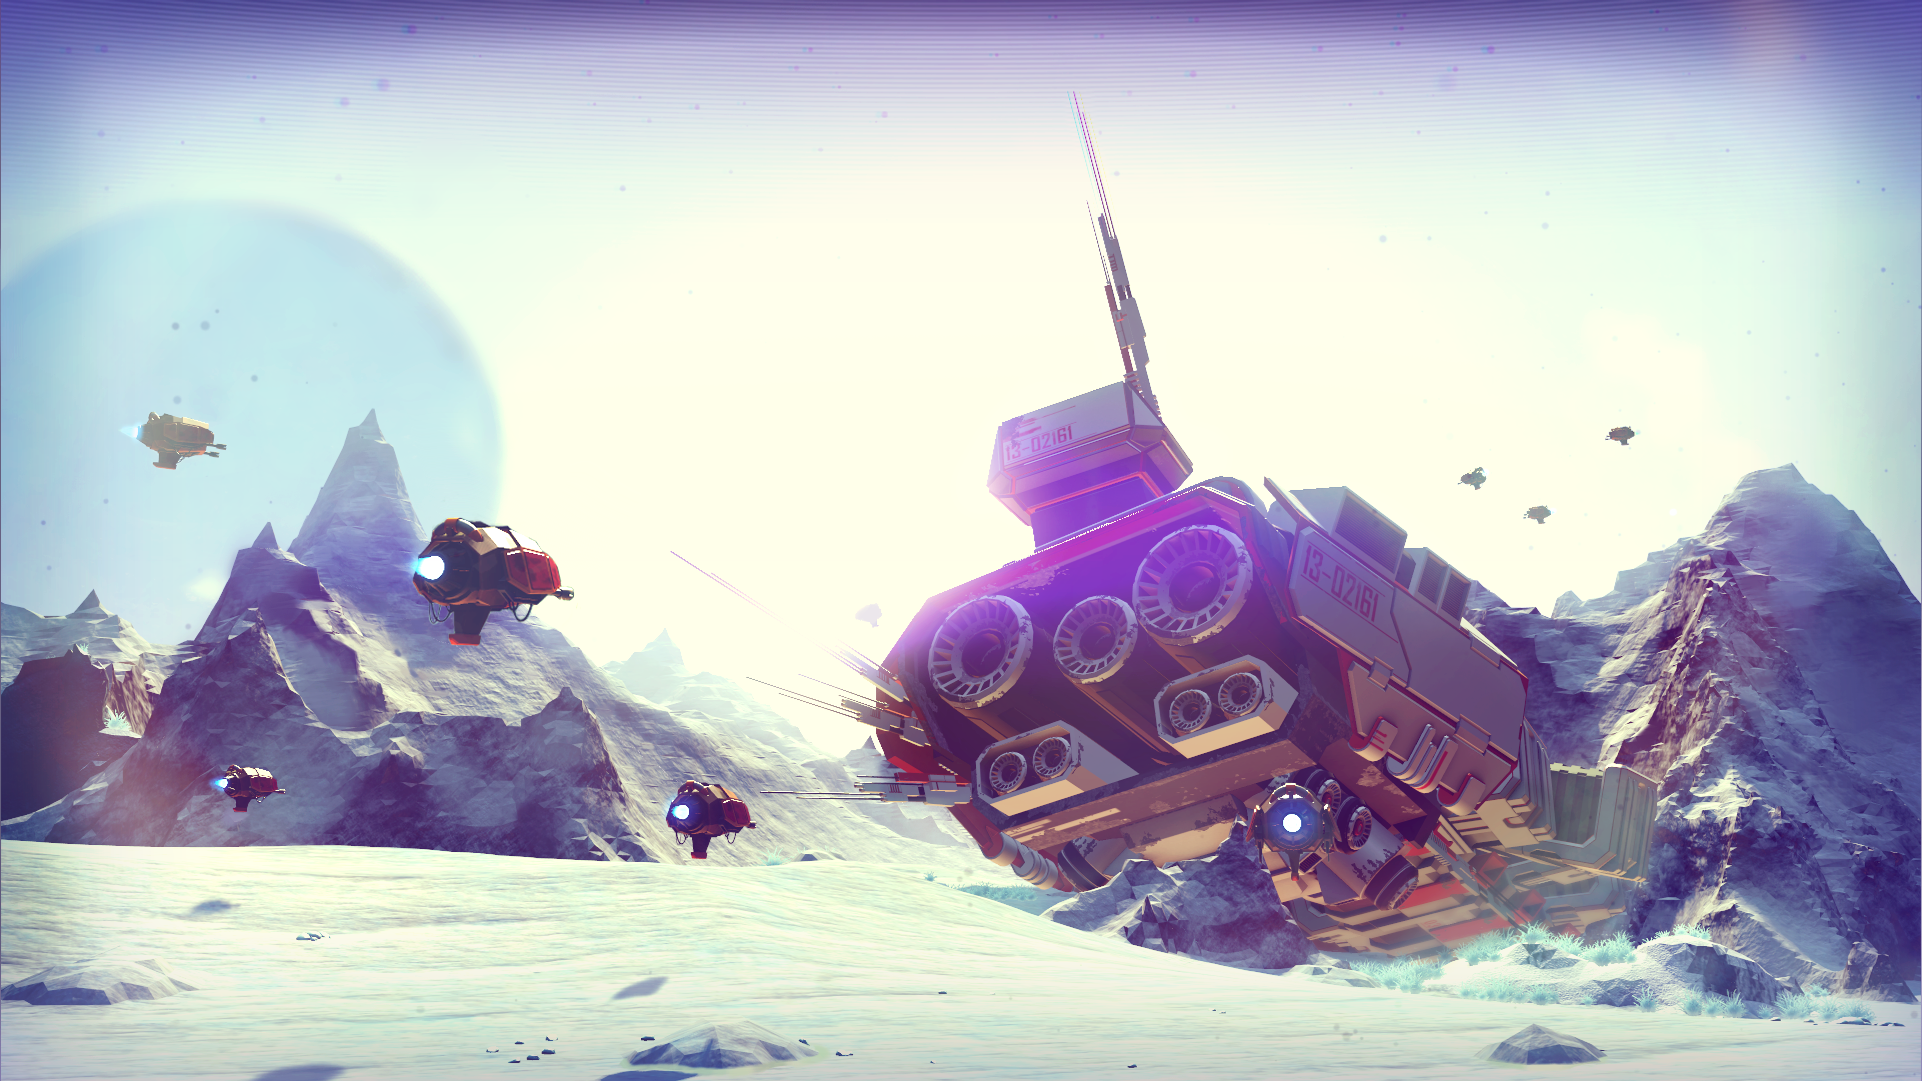 Artistry in Games Becron5 No Man's Sky: Looking Deeper At One Of E3's Biggest Hits Features